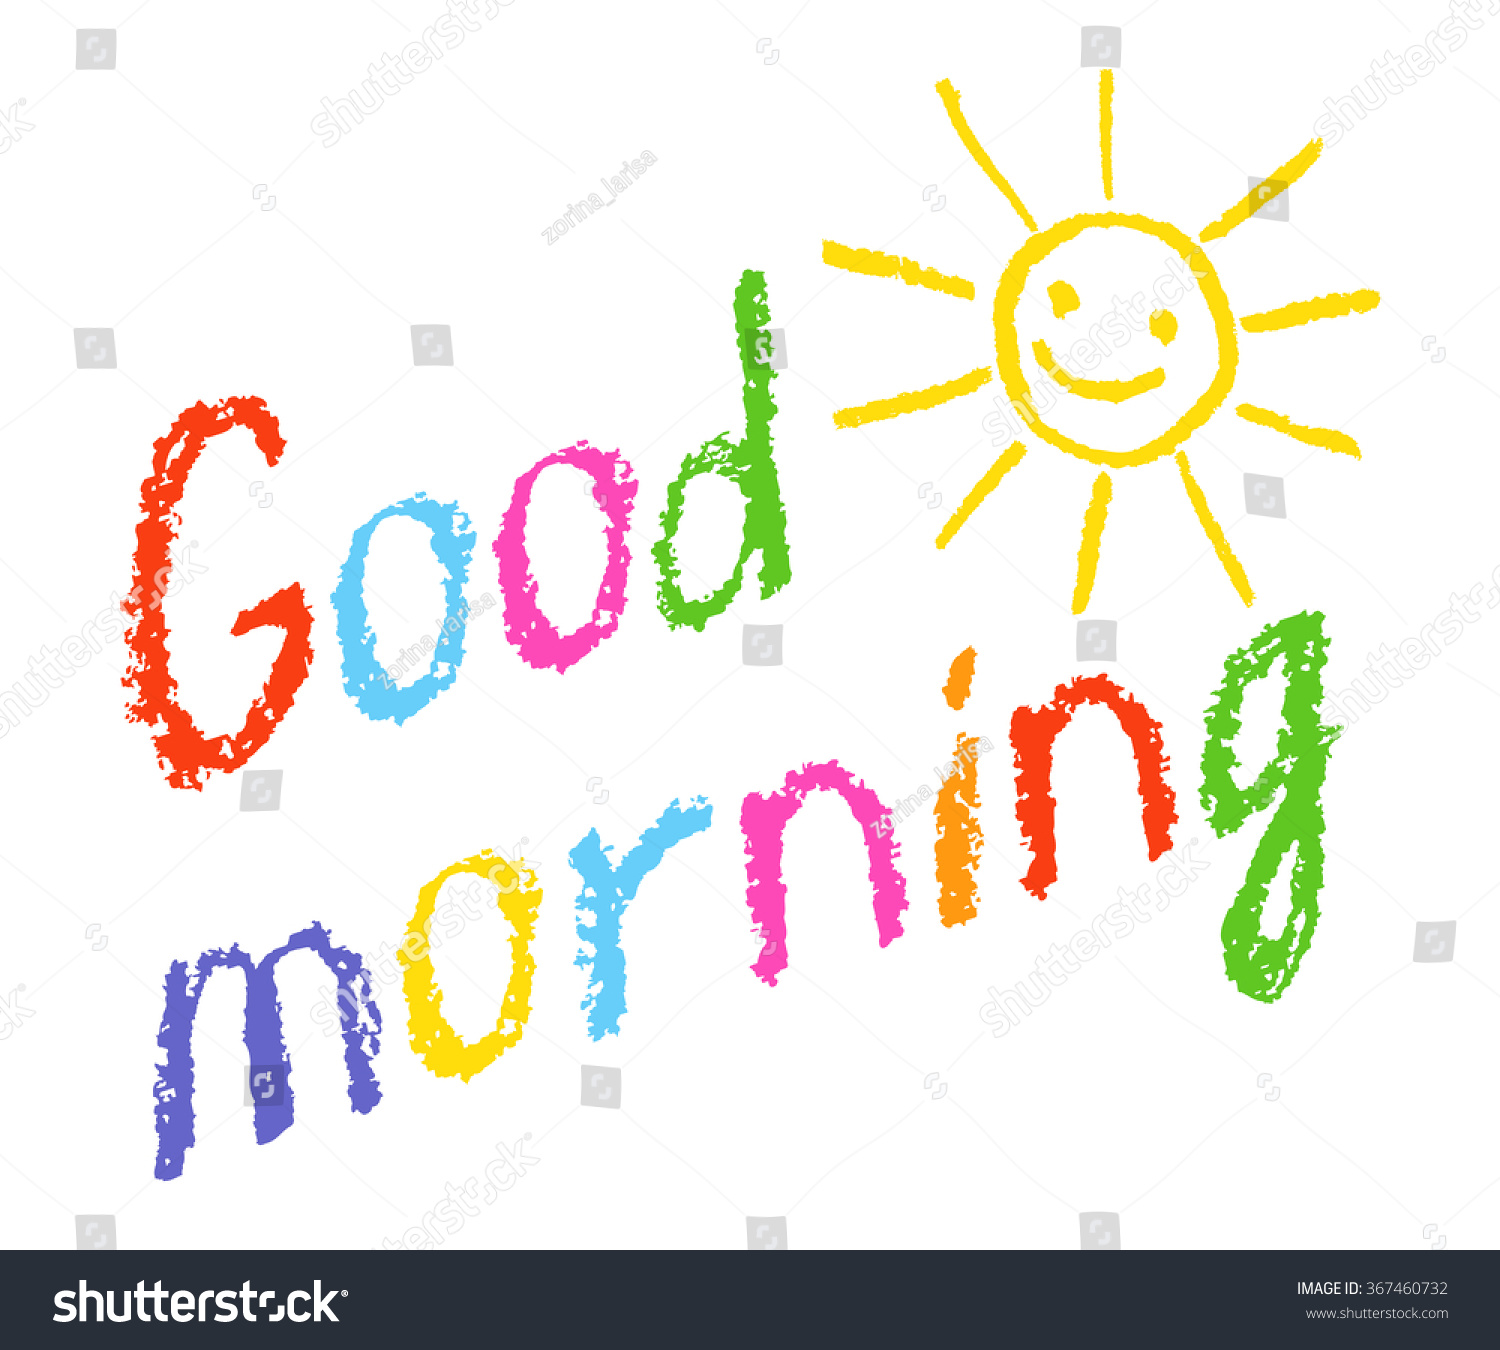 Good Morning Sunshine Letter : Good morning crayon chalk hand lettering stock vector